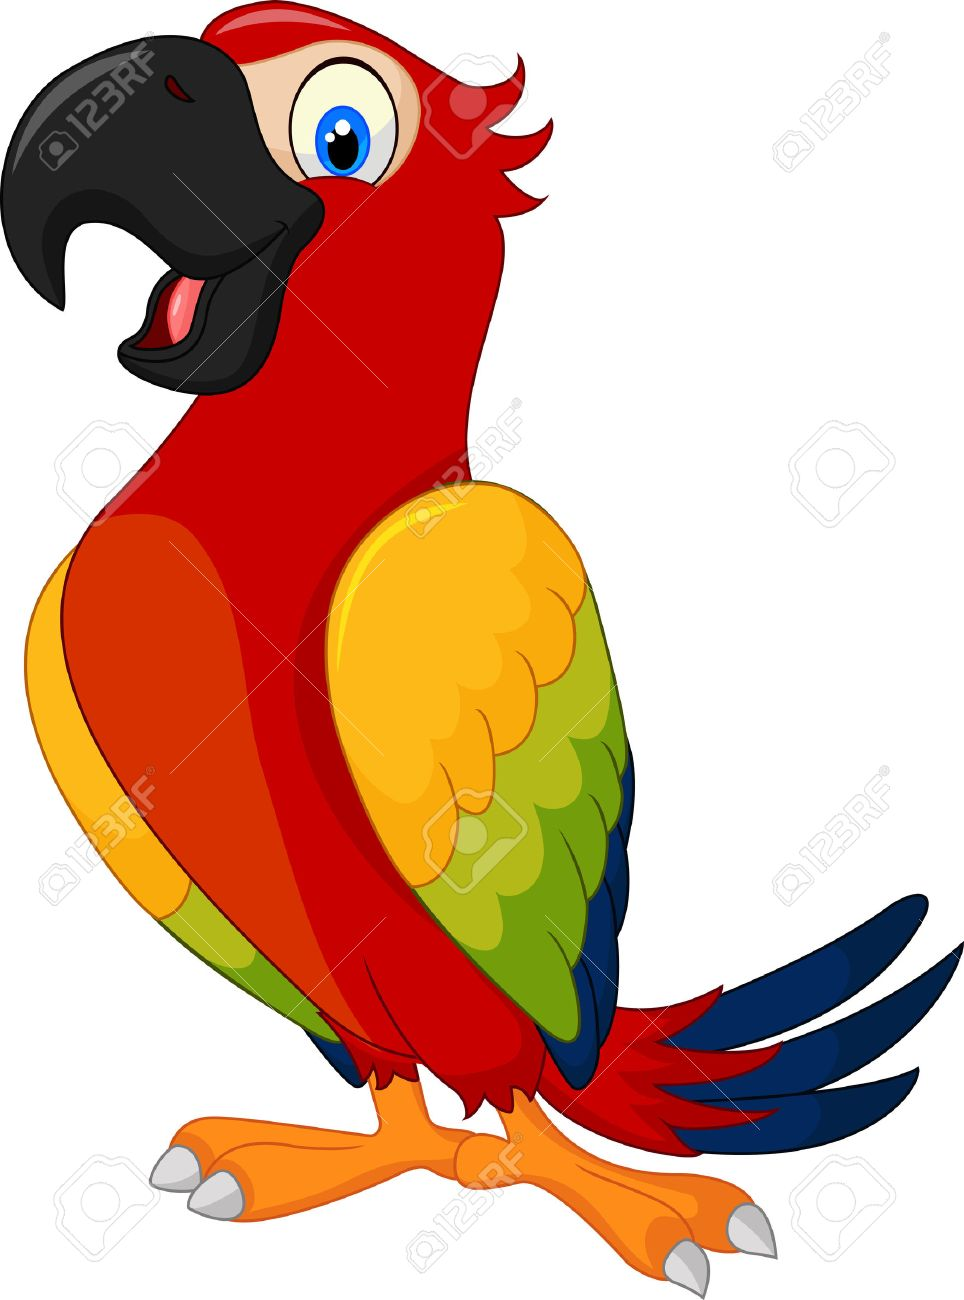 Cartoon Cute Parrot Royalty Free Cliparts Vectors And Stock Illustration Image 40496732